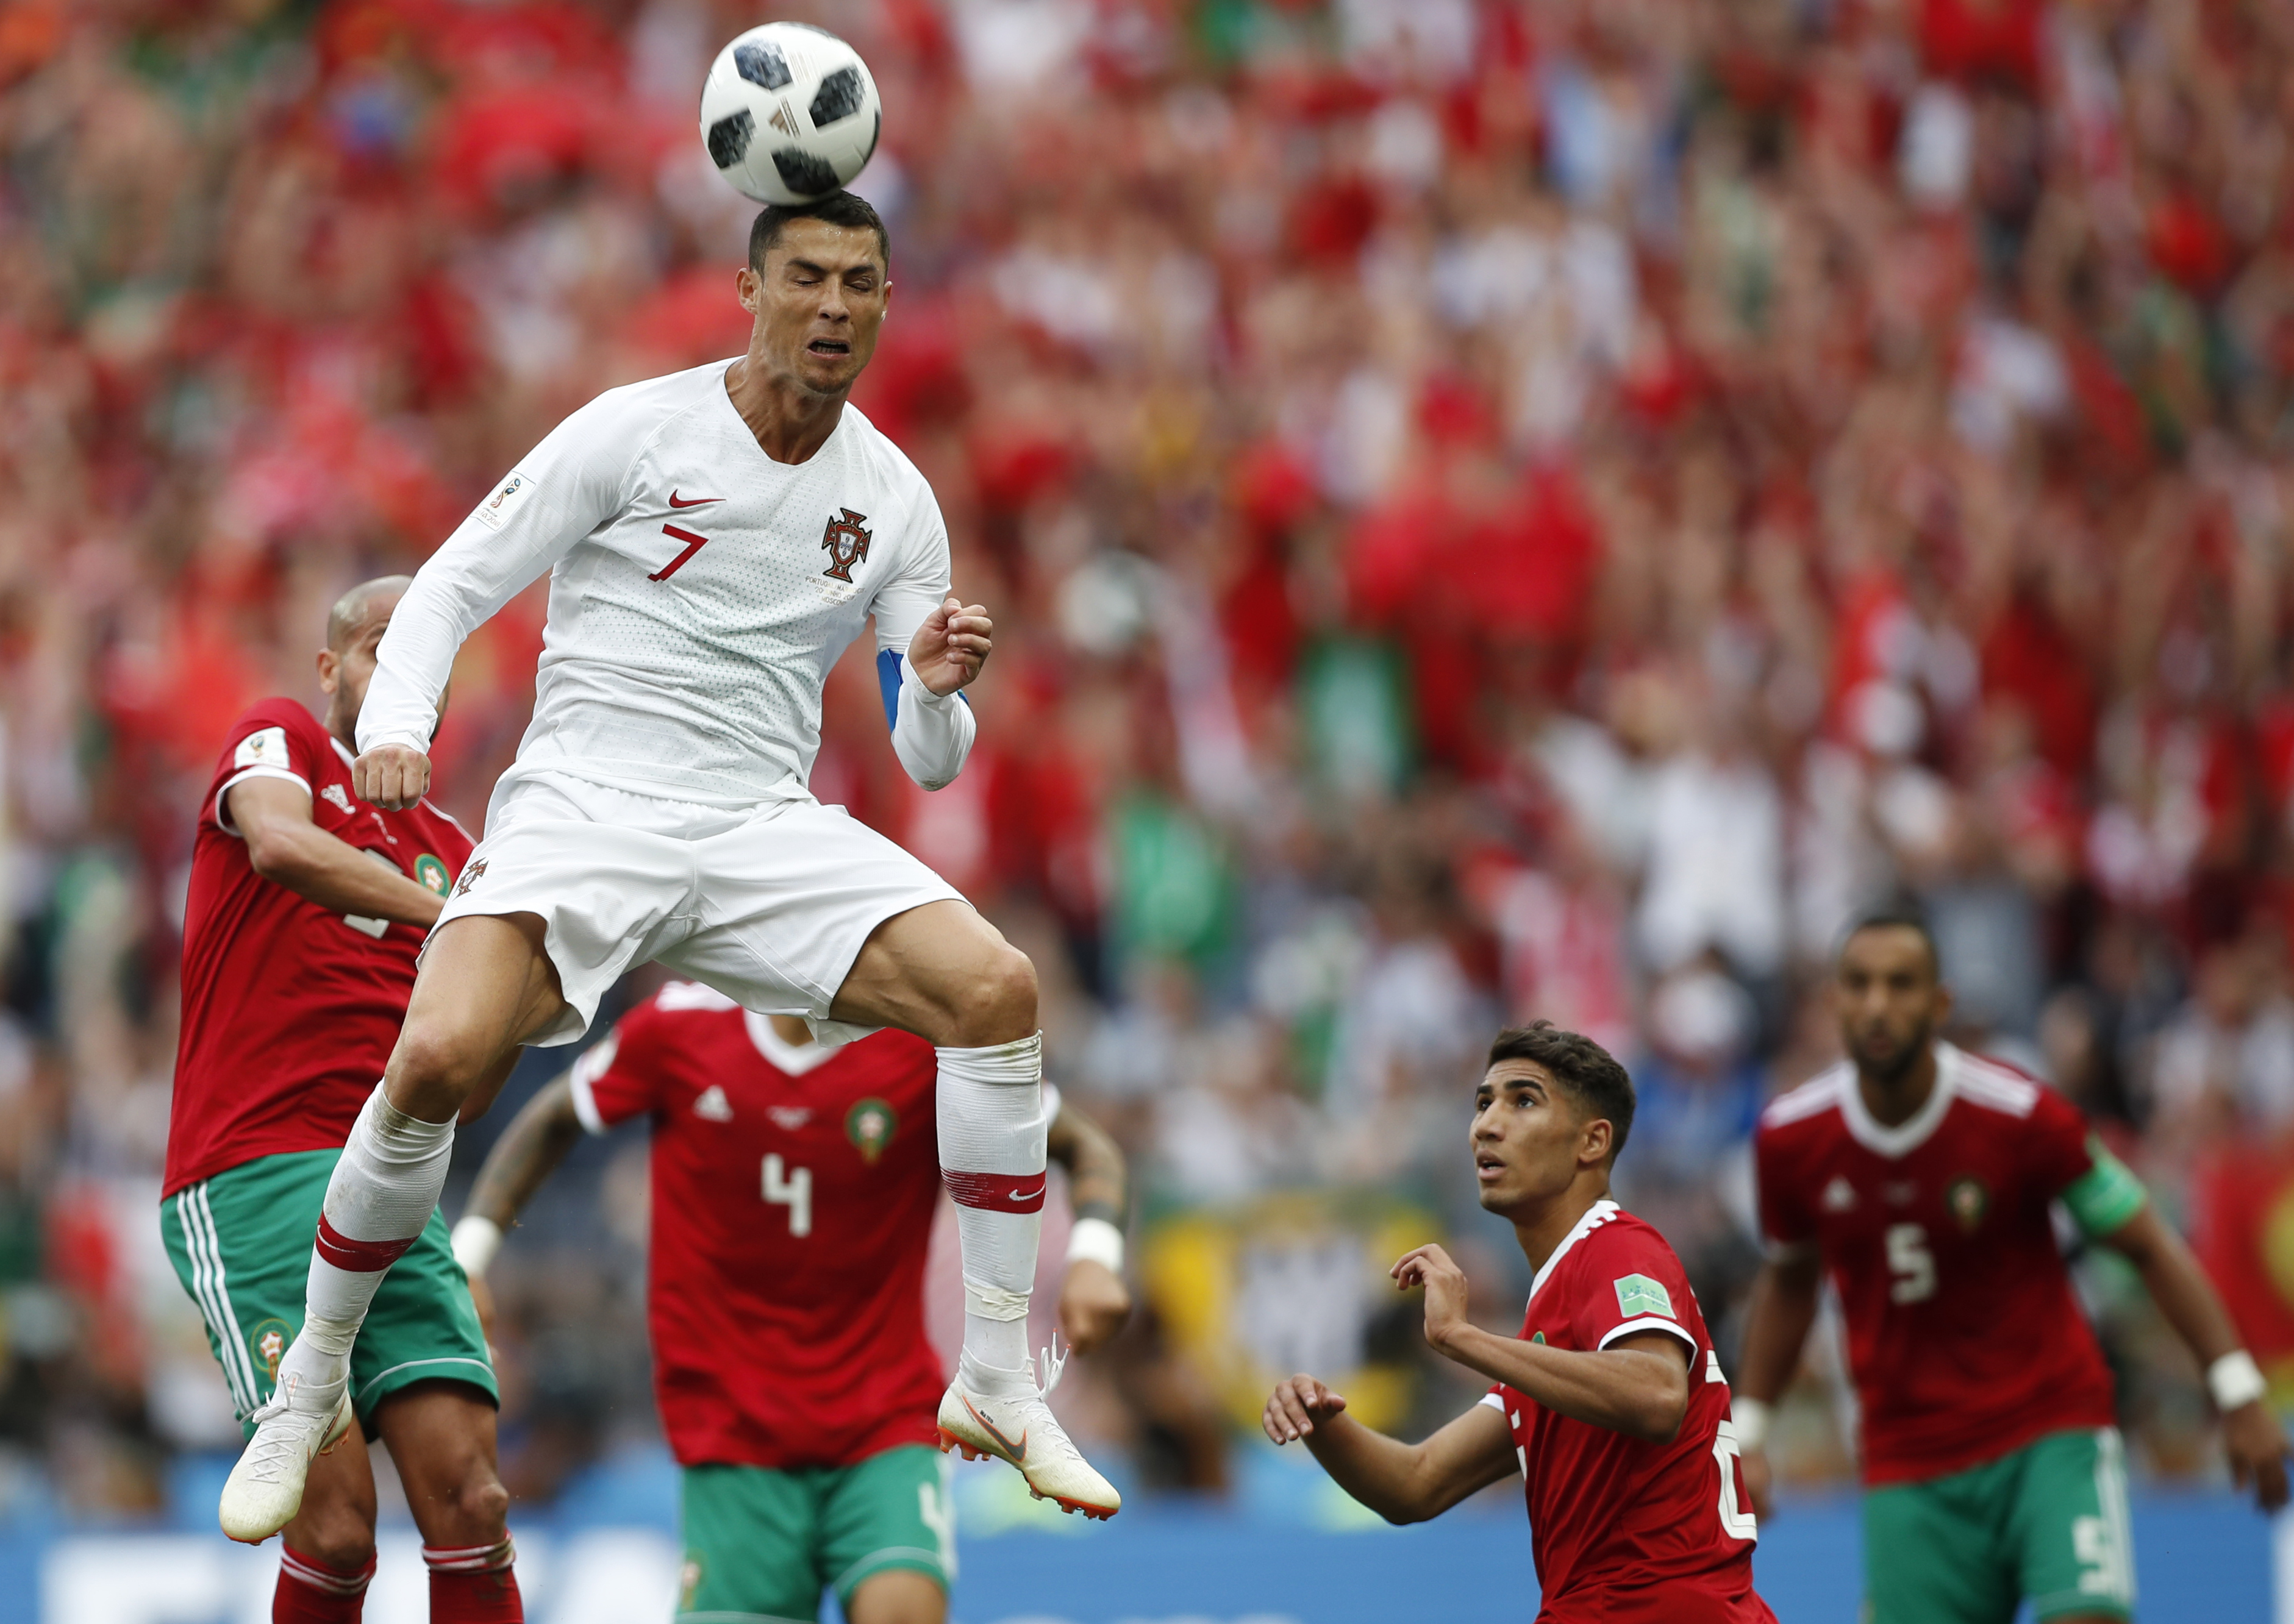 <div class='meta'><div class='origin-logo' data-origin='none'></div><span class='caption-text' data-credit='Francisco Seco/AP Photo'>Portugal's Cristiano Ronaldo leaps up for a header during the group B match against Morocco in the Luzhniki Stadium in Moscow, Russia, Wednesday, June 20, 2018.</span></div>